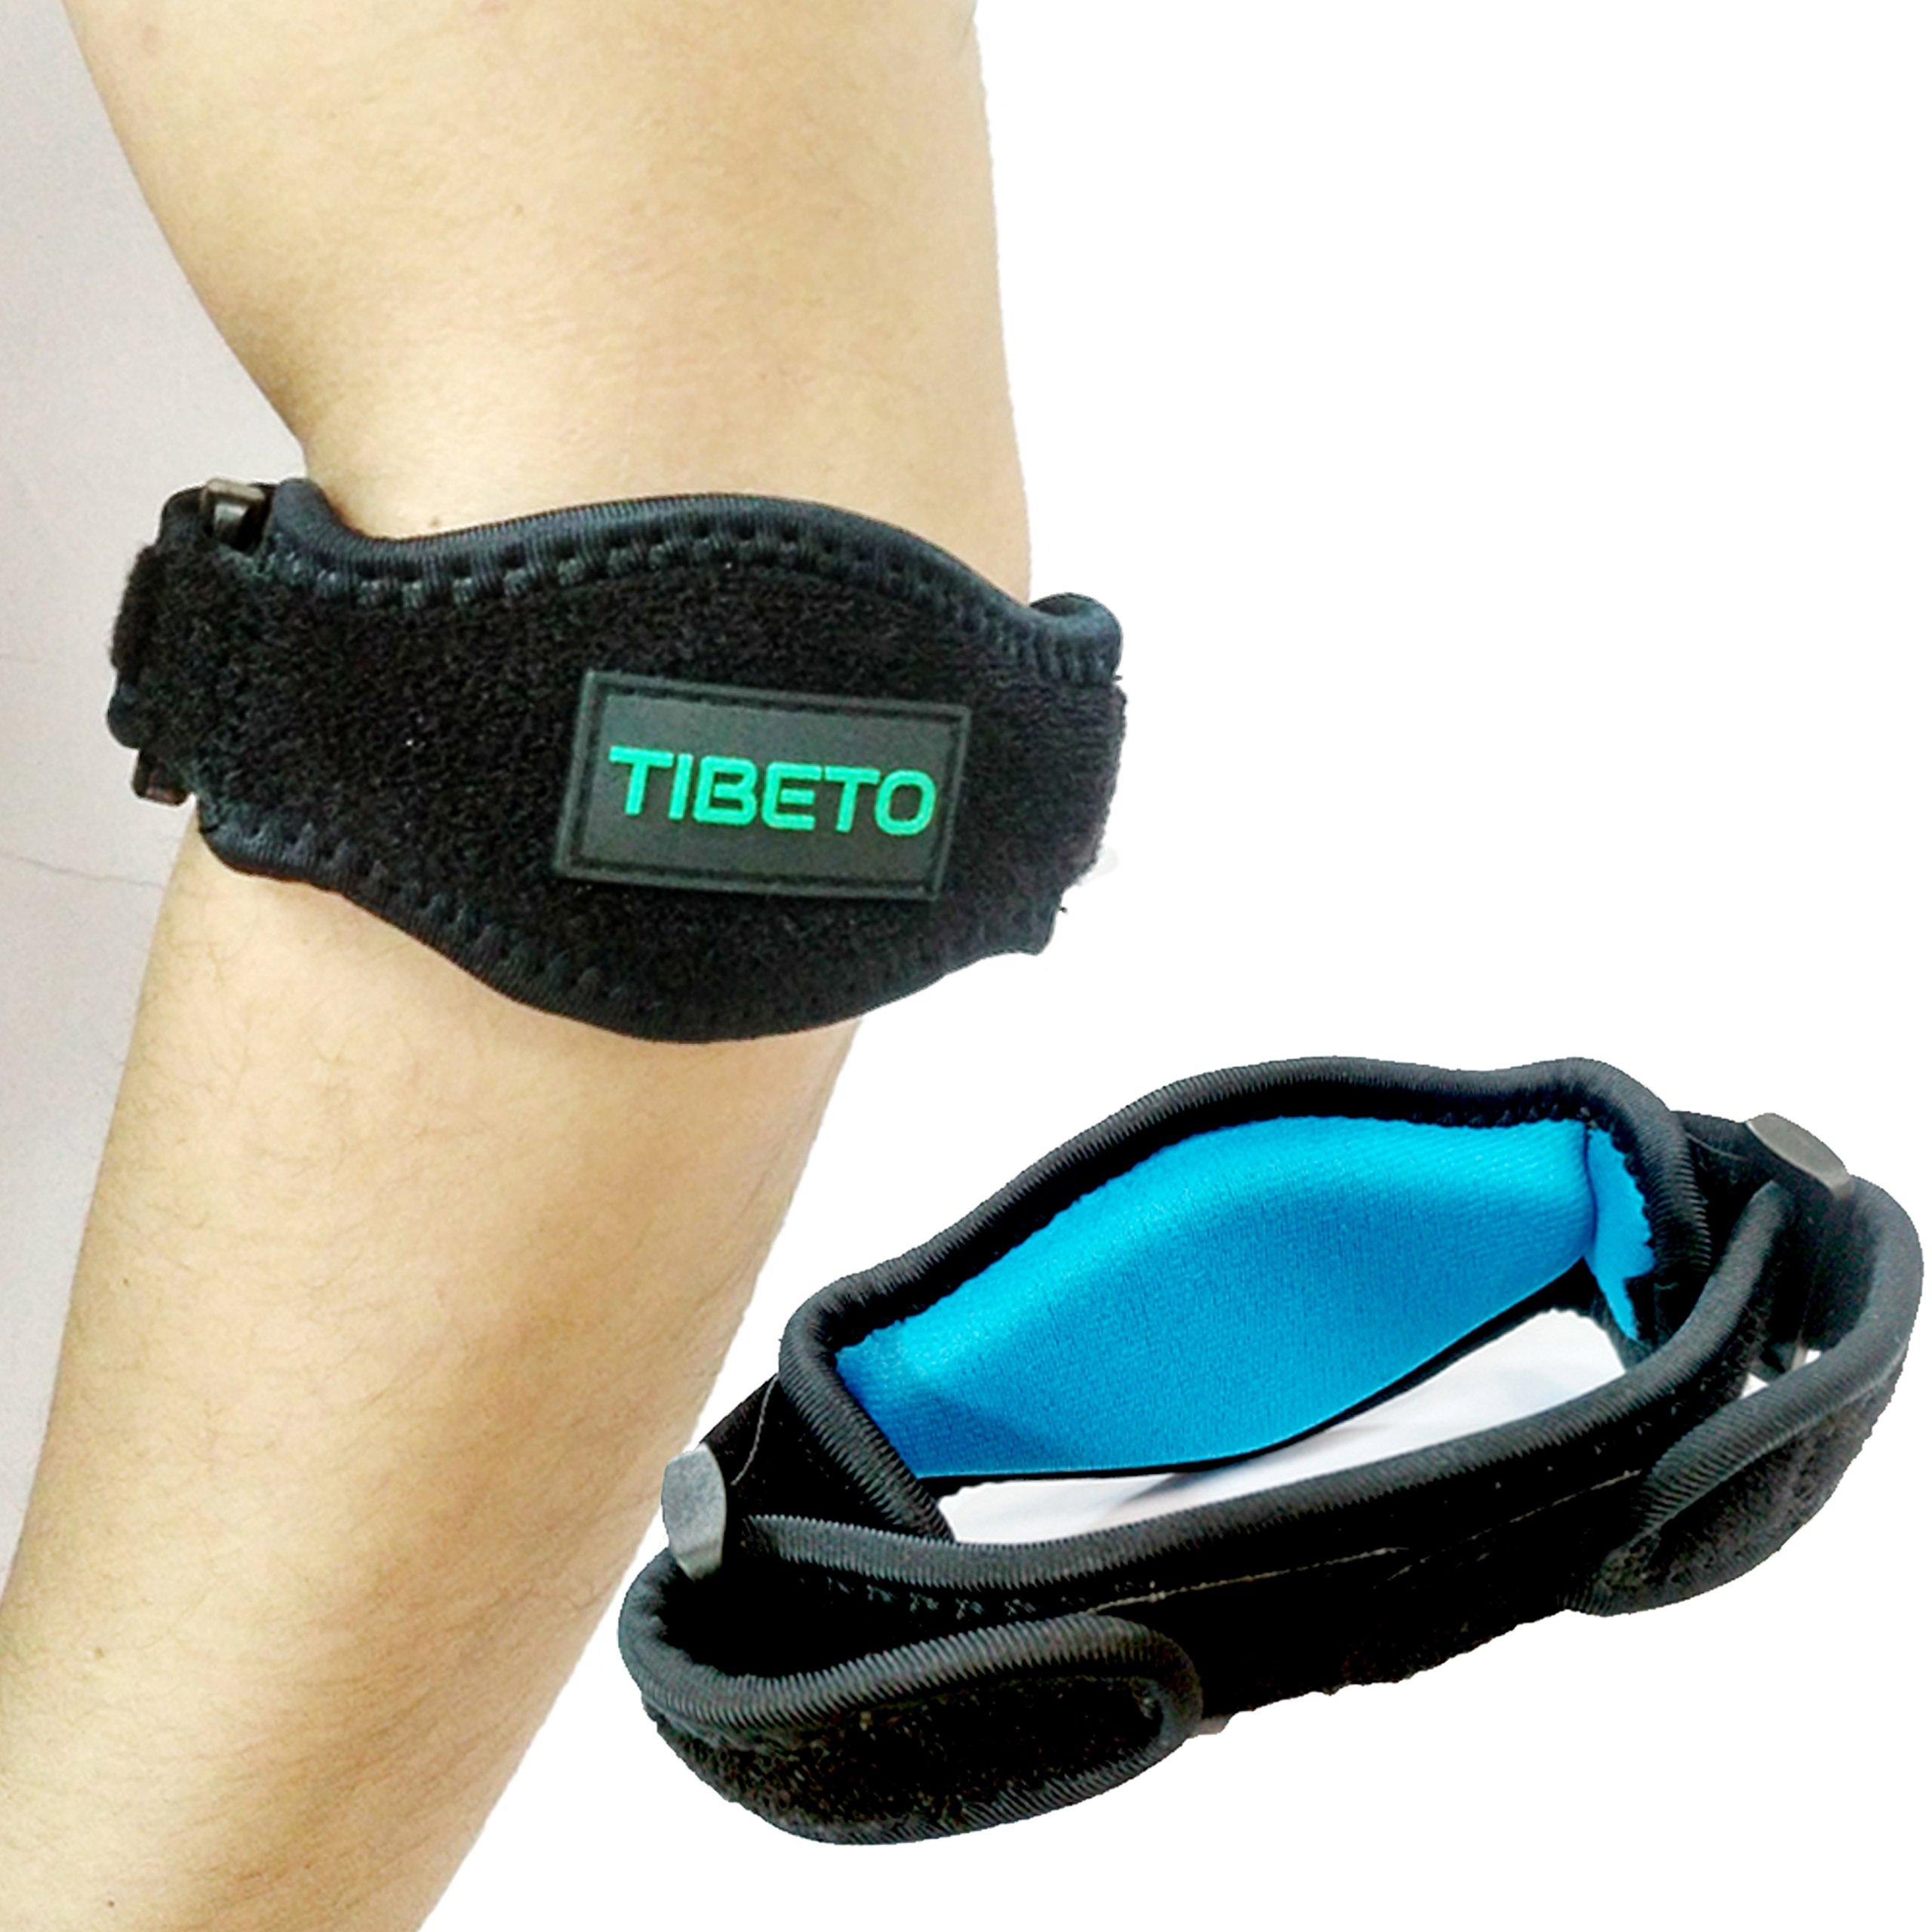 Amazon.com: ApudArmis Knee Support Strap for Pain Relief ...